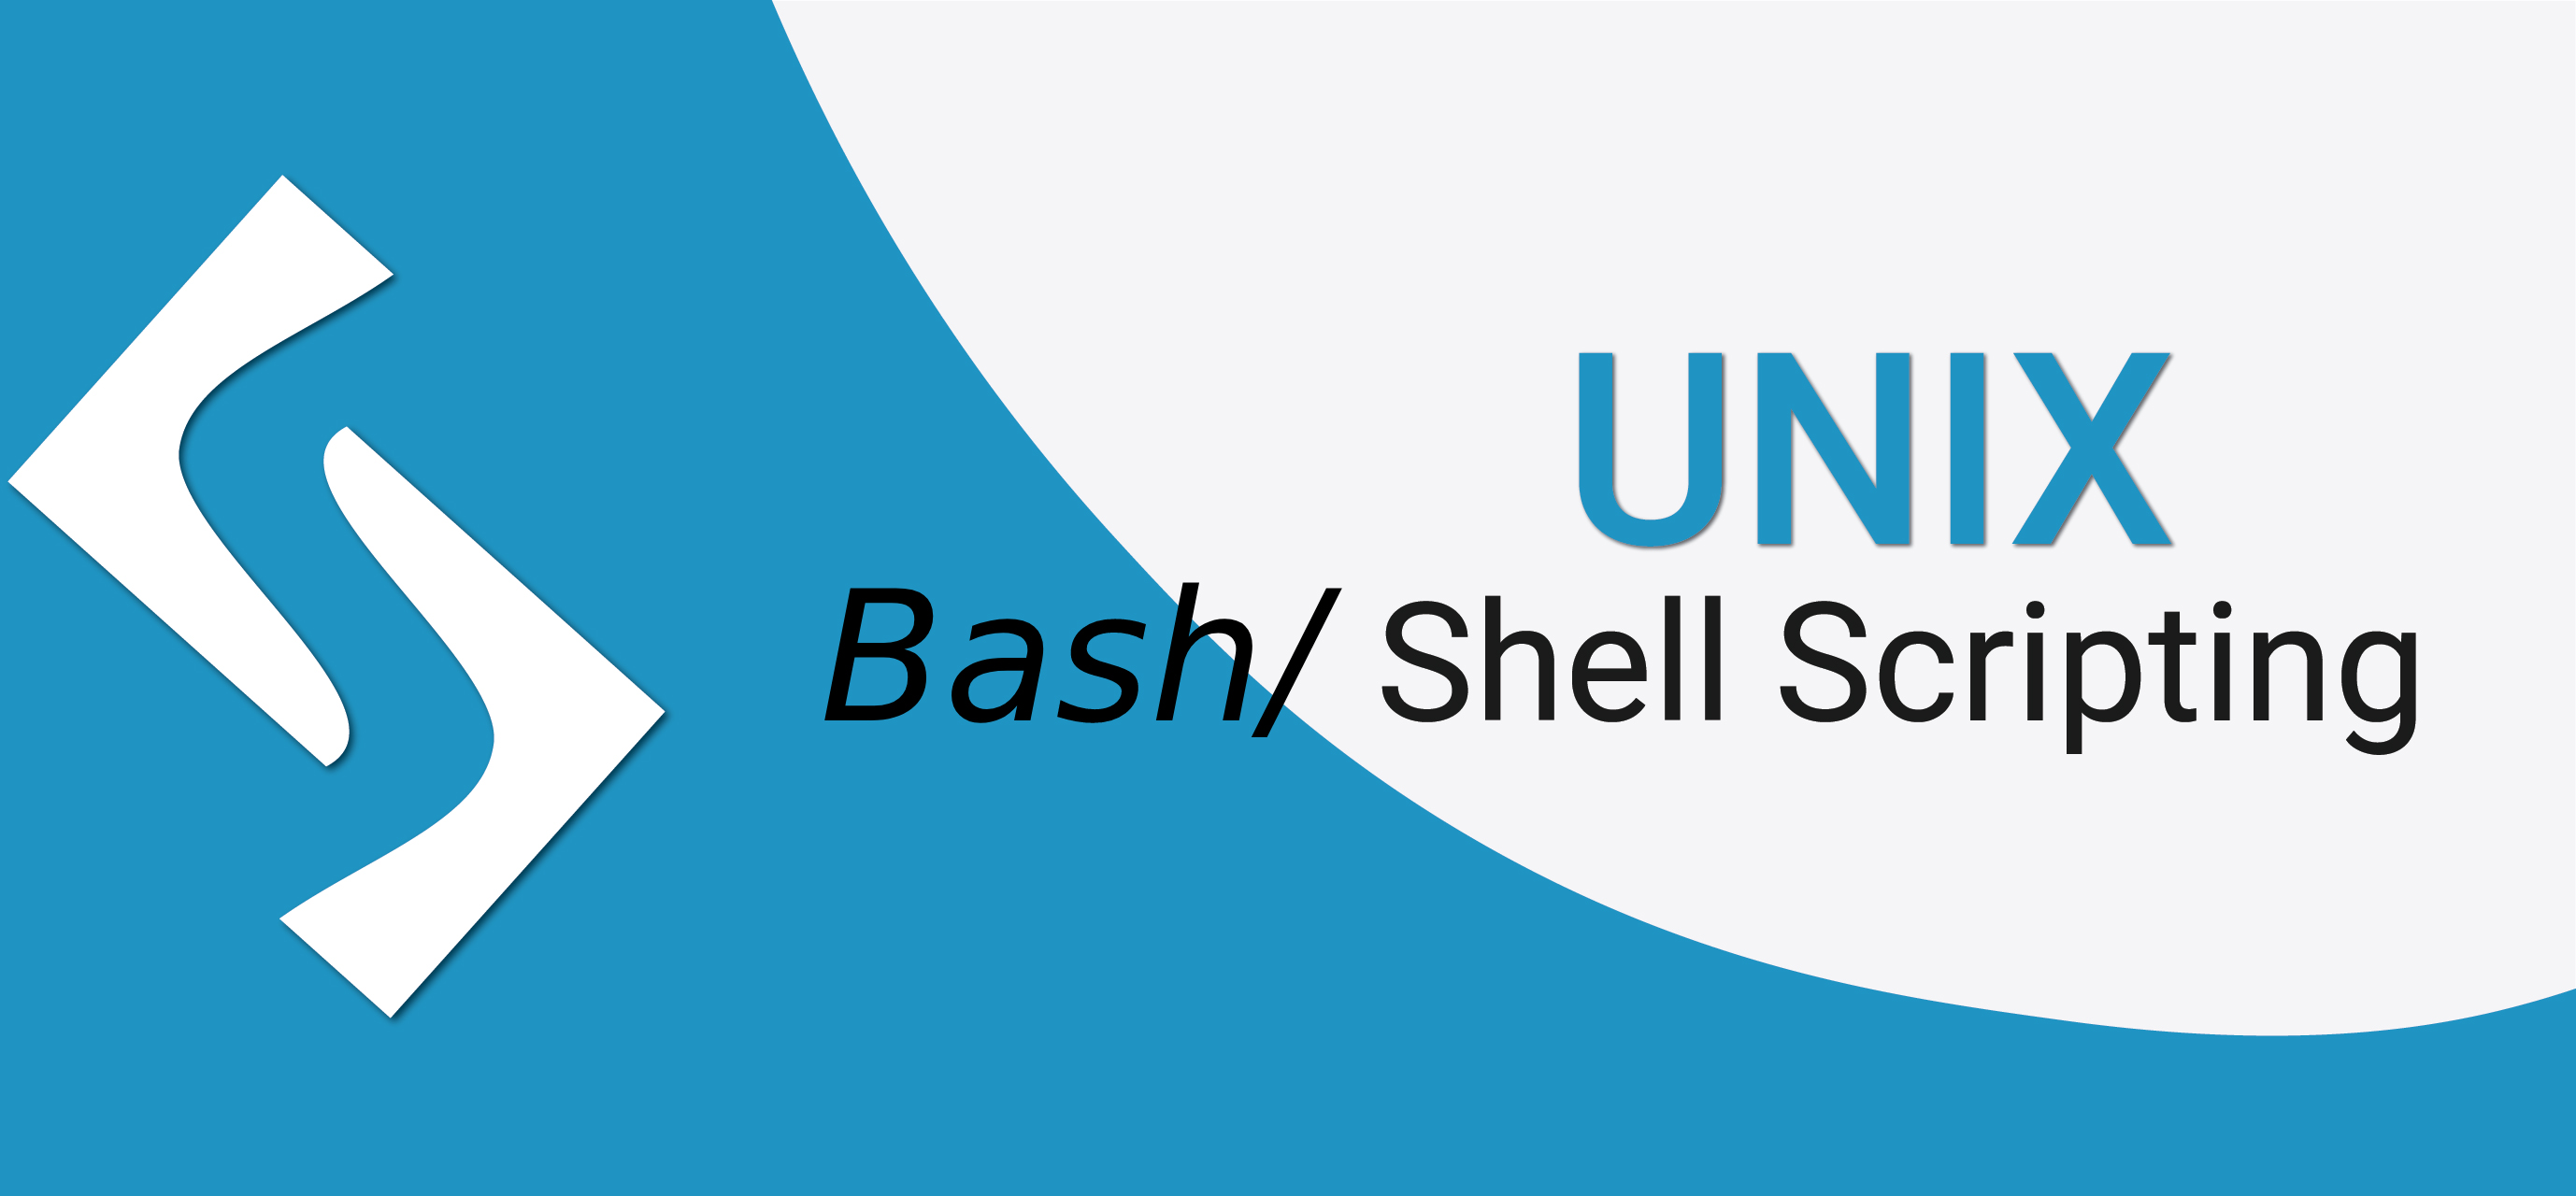 Bash/shell scripting